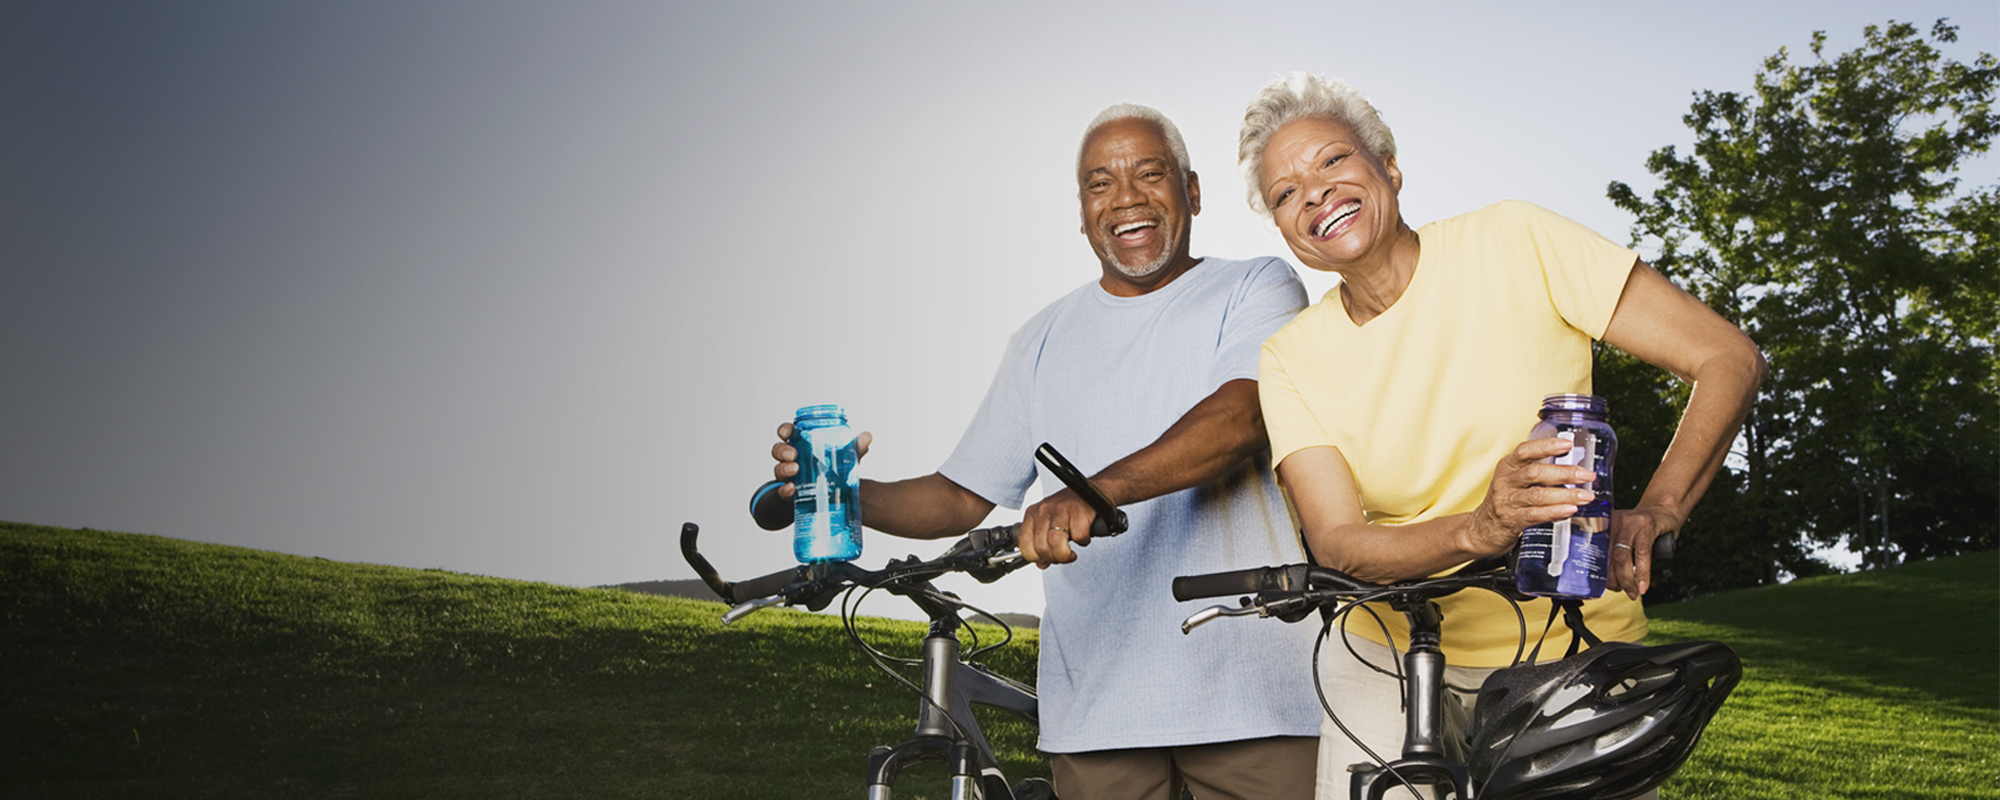 Image of an old couple smiling